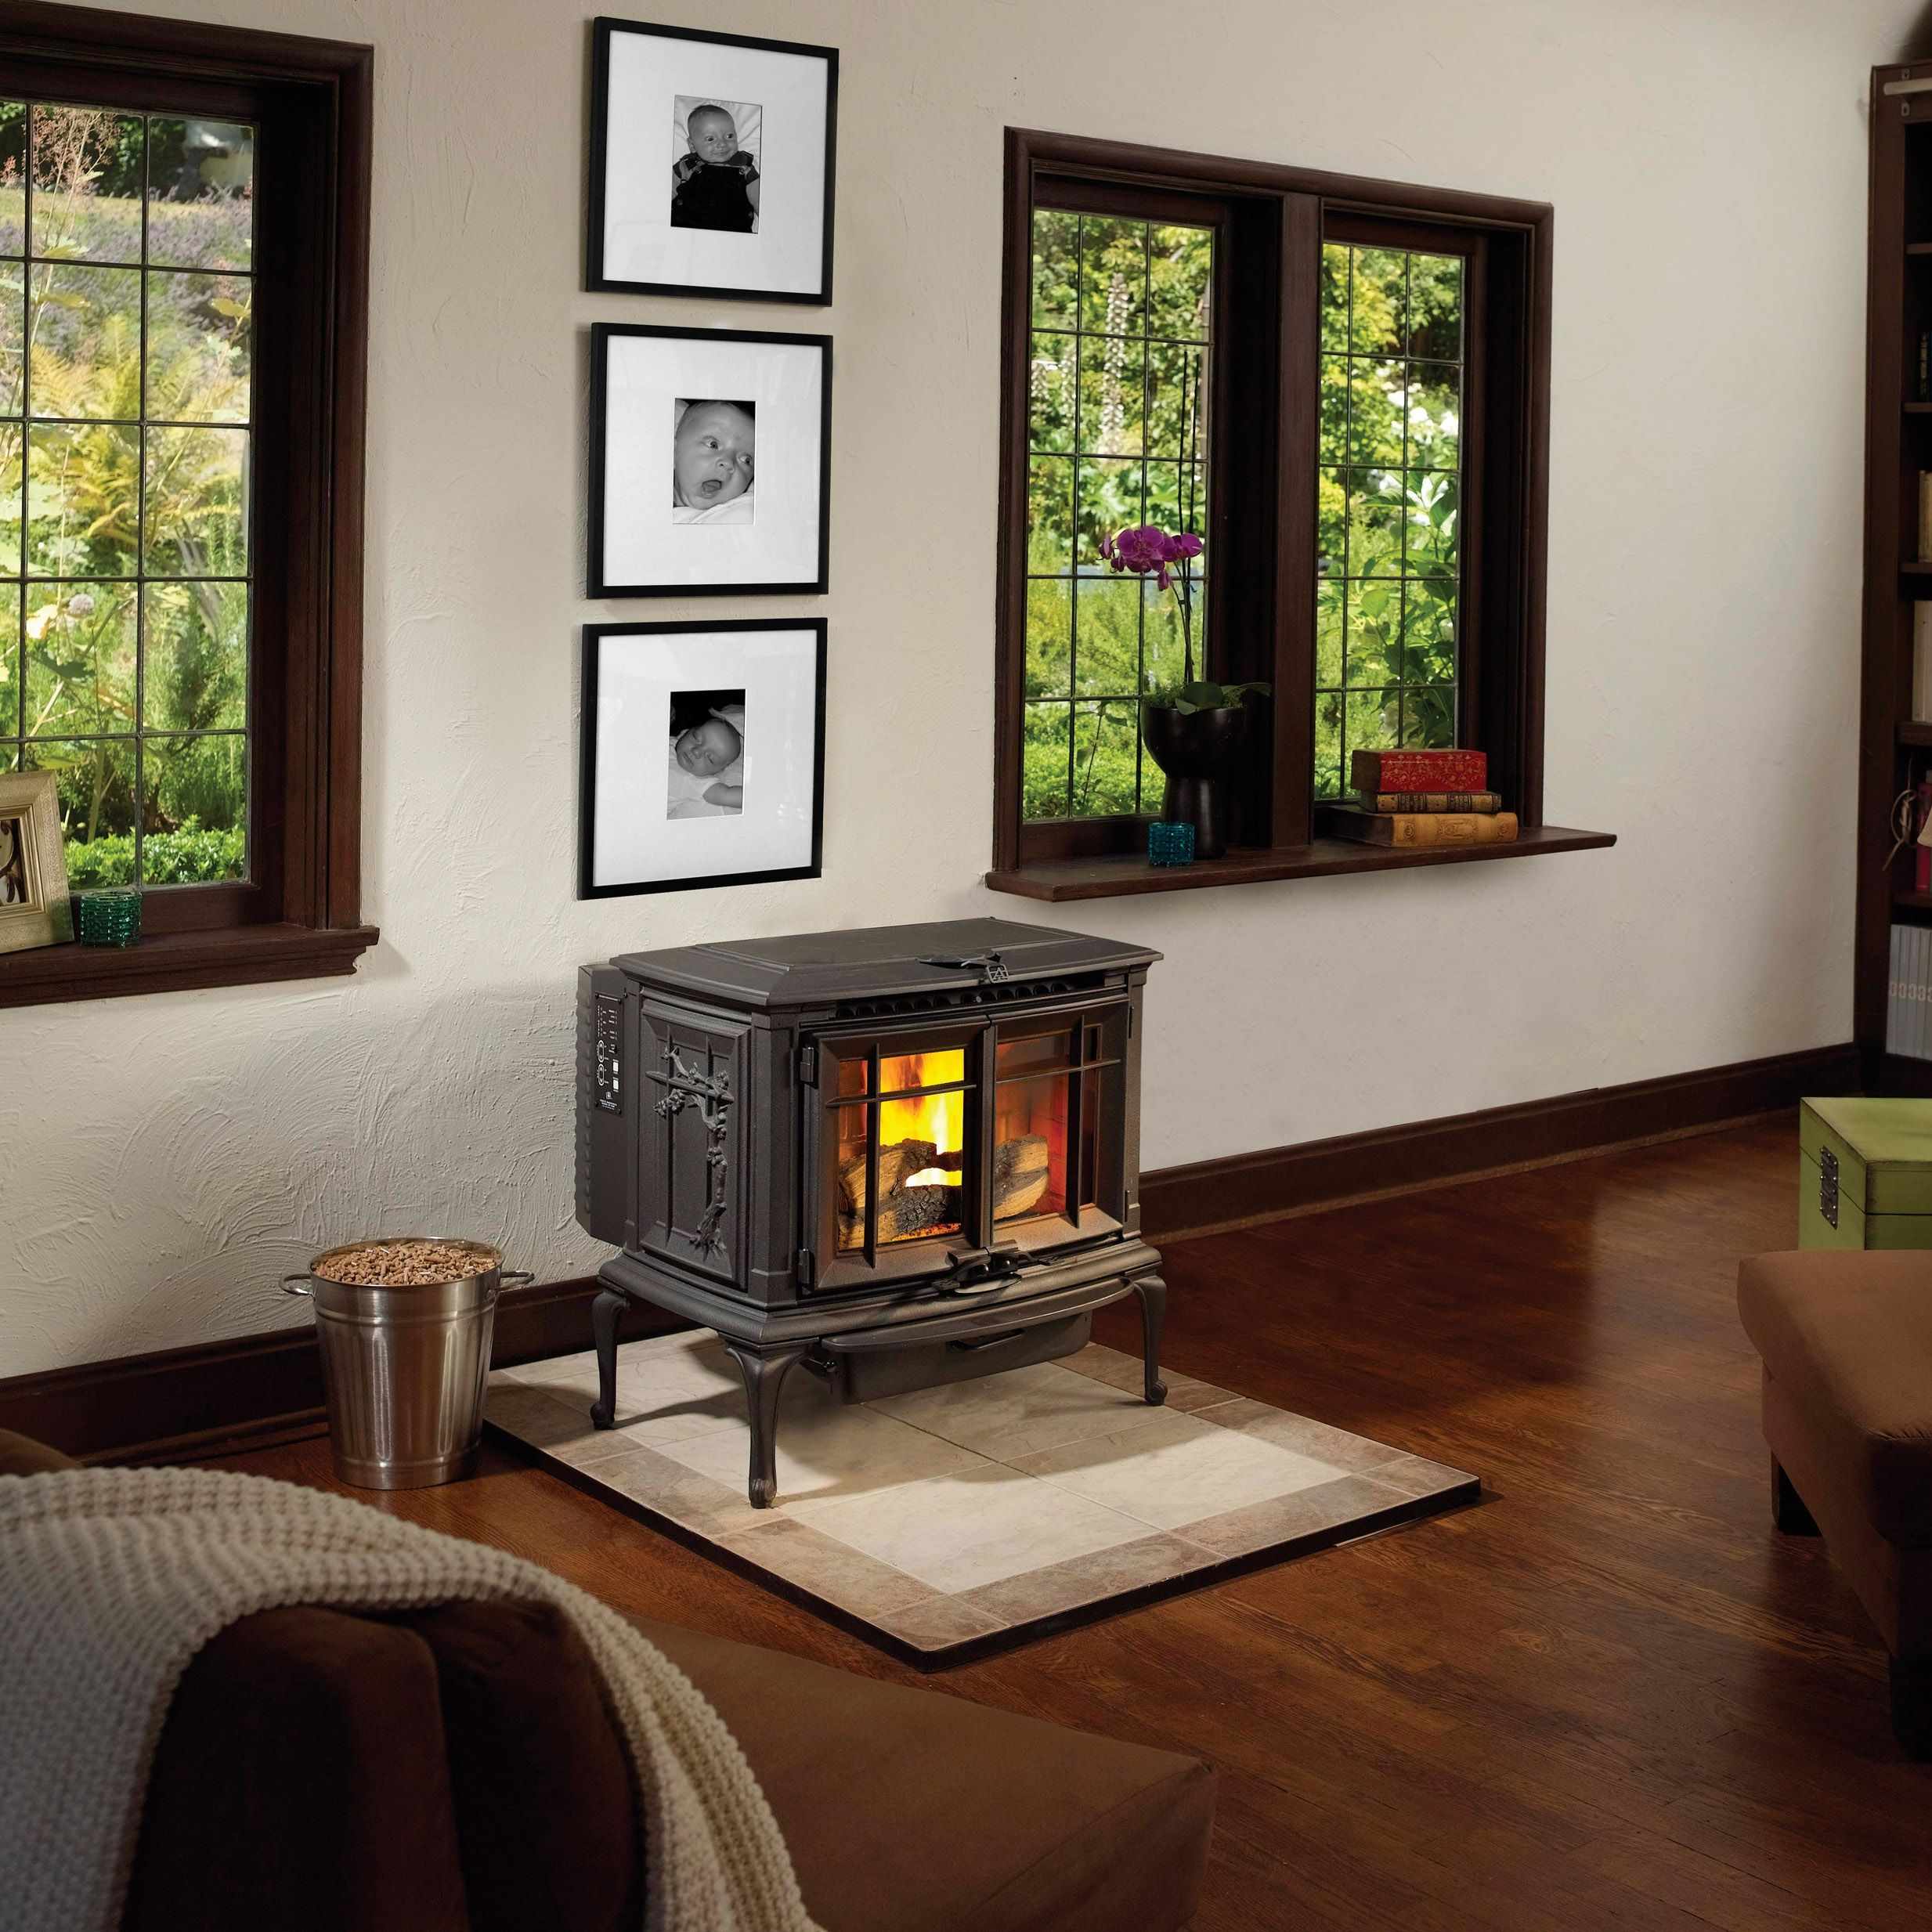 Caminetti Montegrappa Call Service Avalon Arbor Pellet Stove Small One For The Master Bedroom